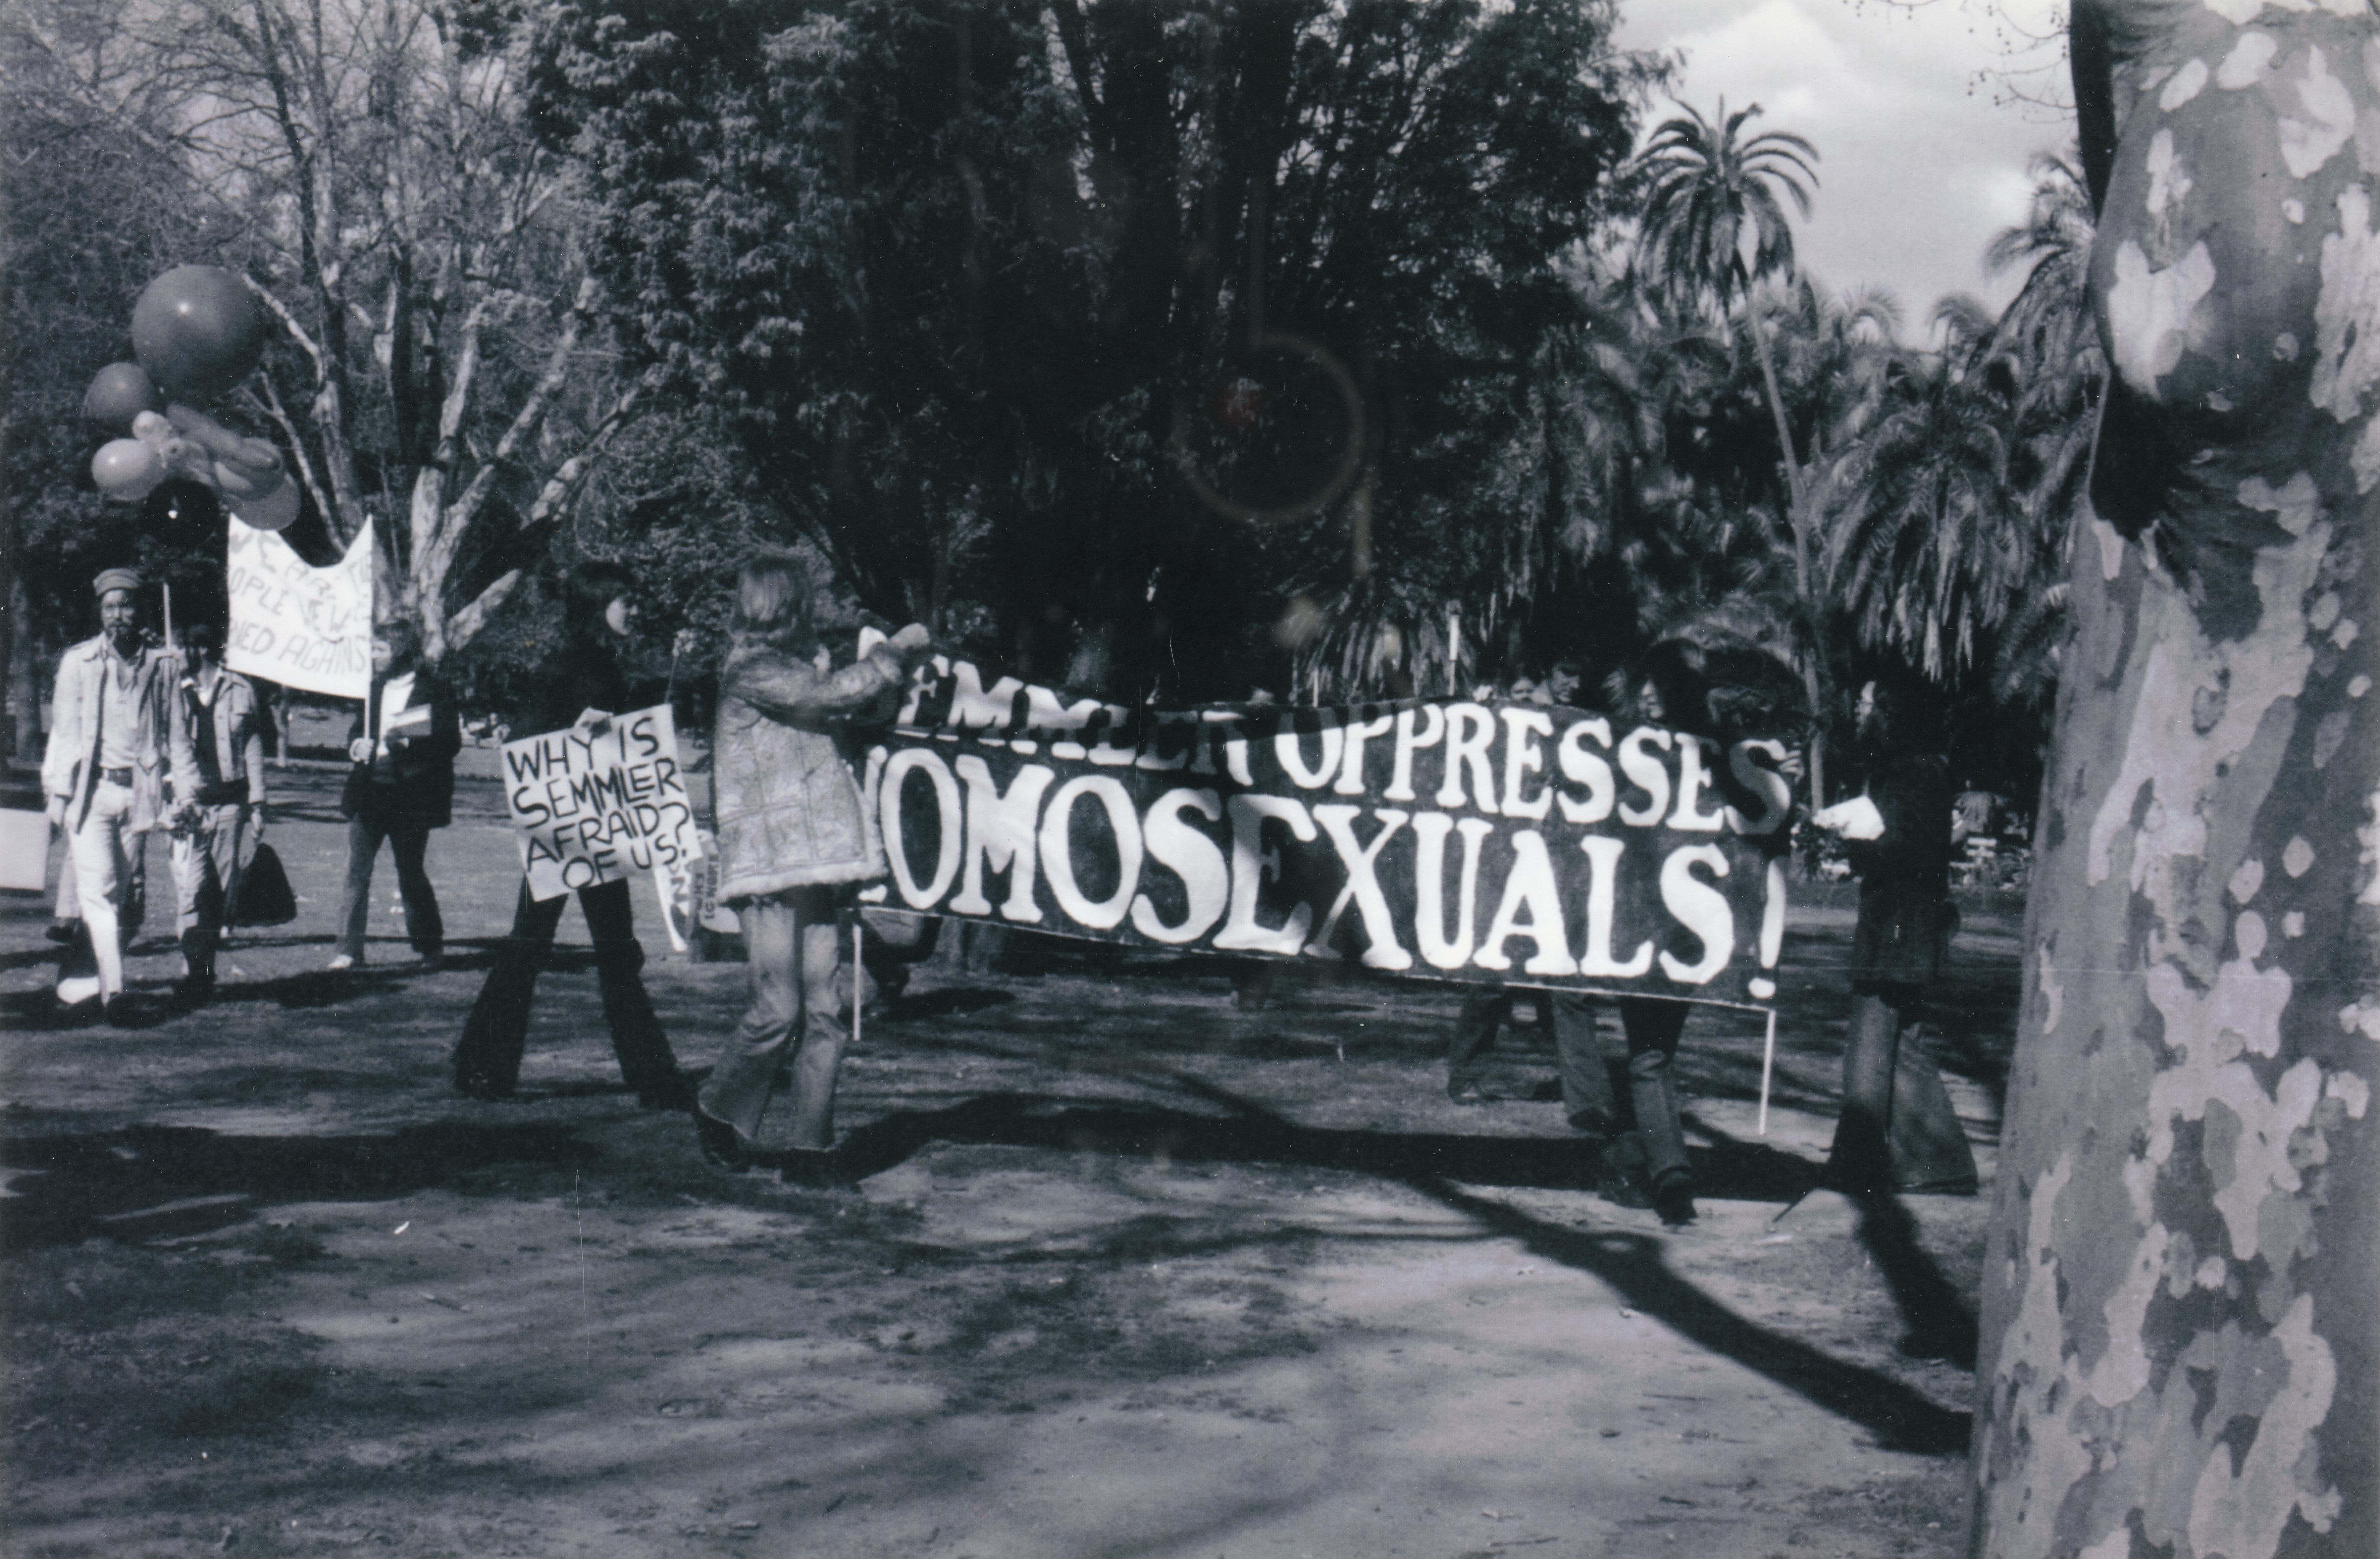 Banner: 'Semmler Oppresses Homosexuals', CAMP/Sydney Gay Lib demonstrators in Hyde Park on their way to ABC Headquarters, Castlereagh Street, Sydney.